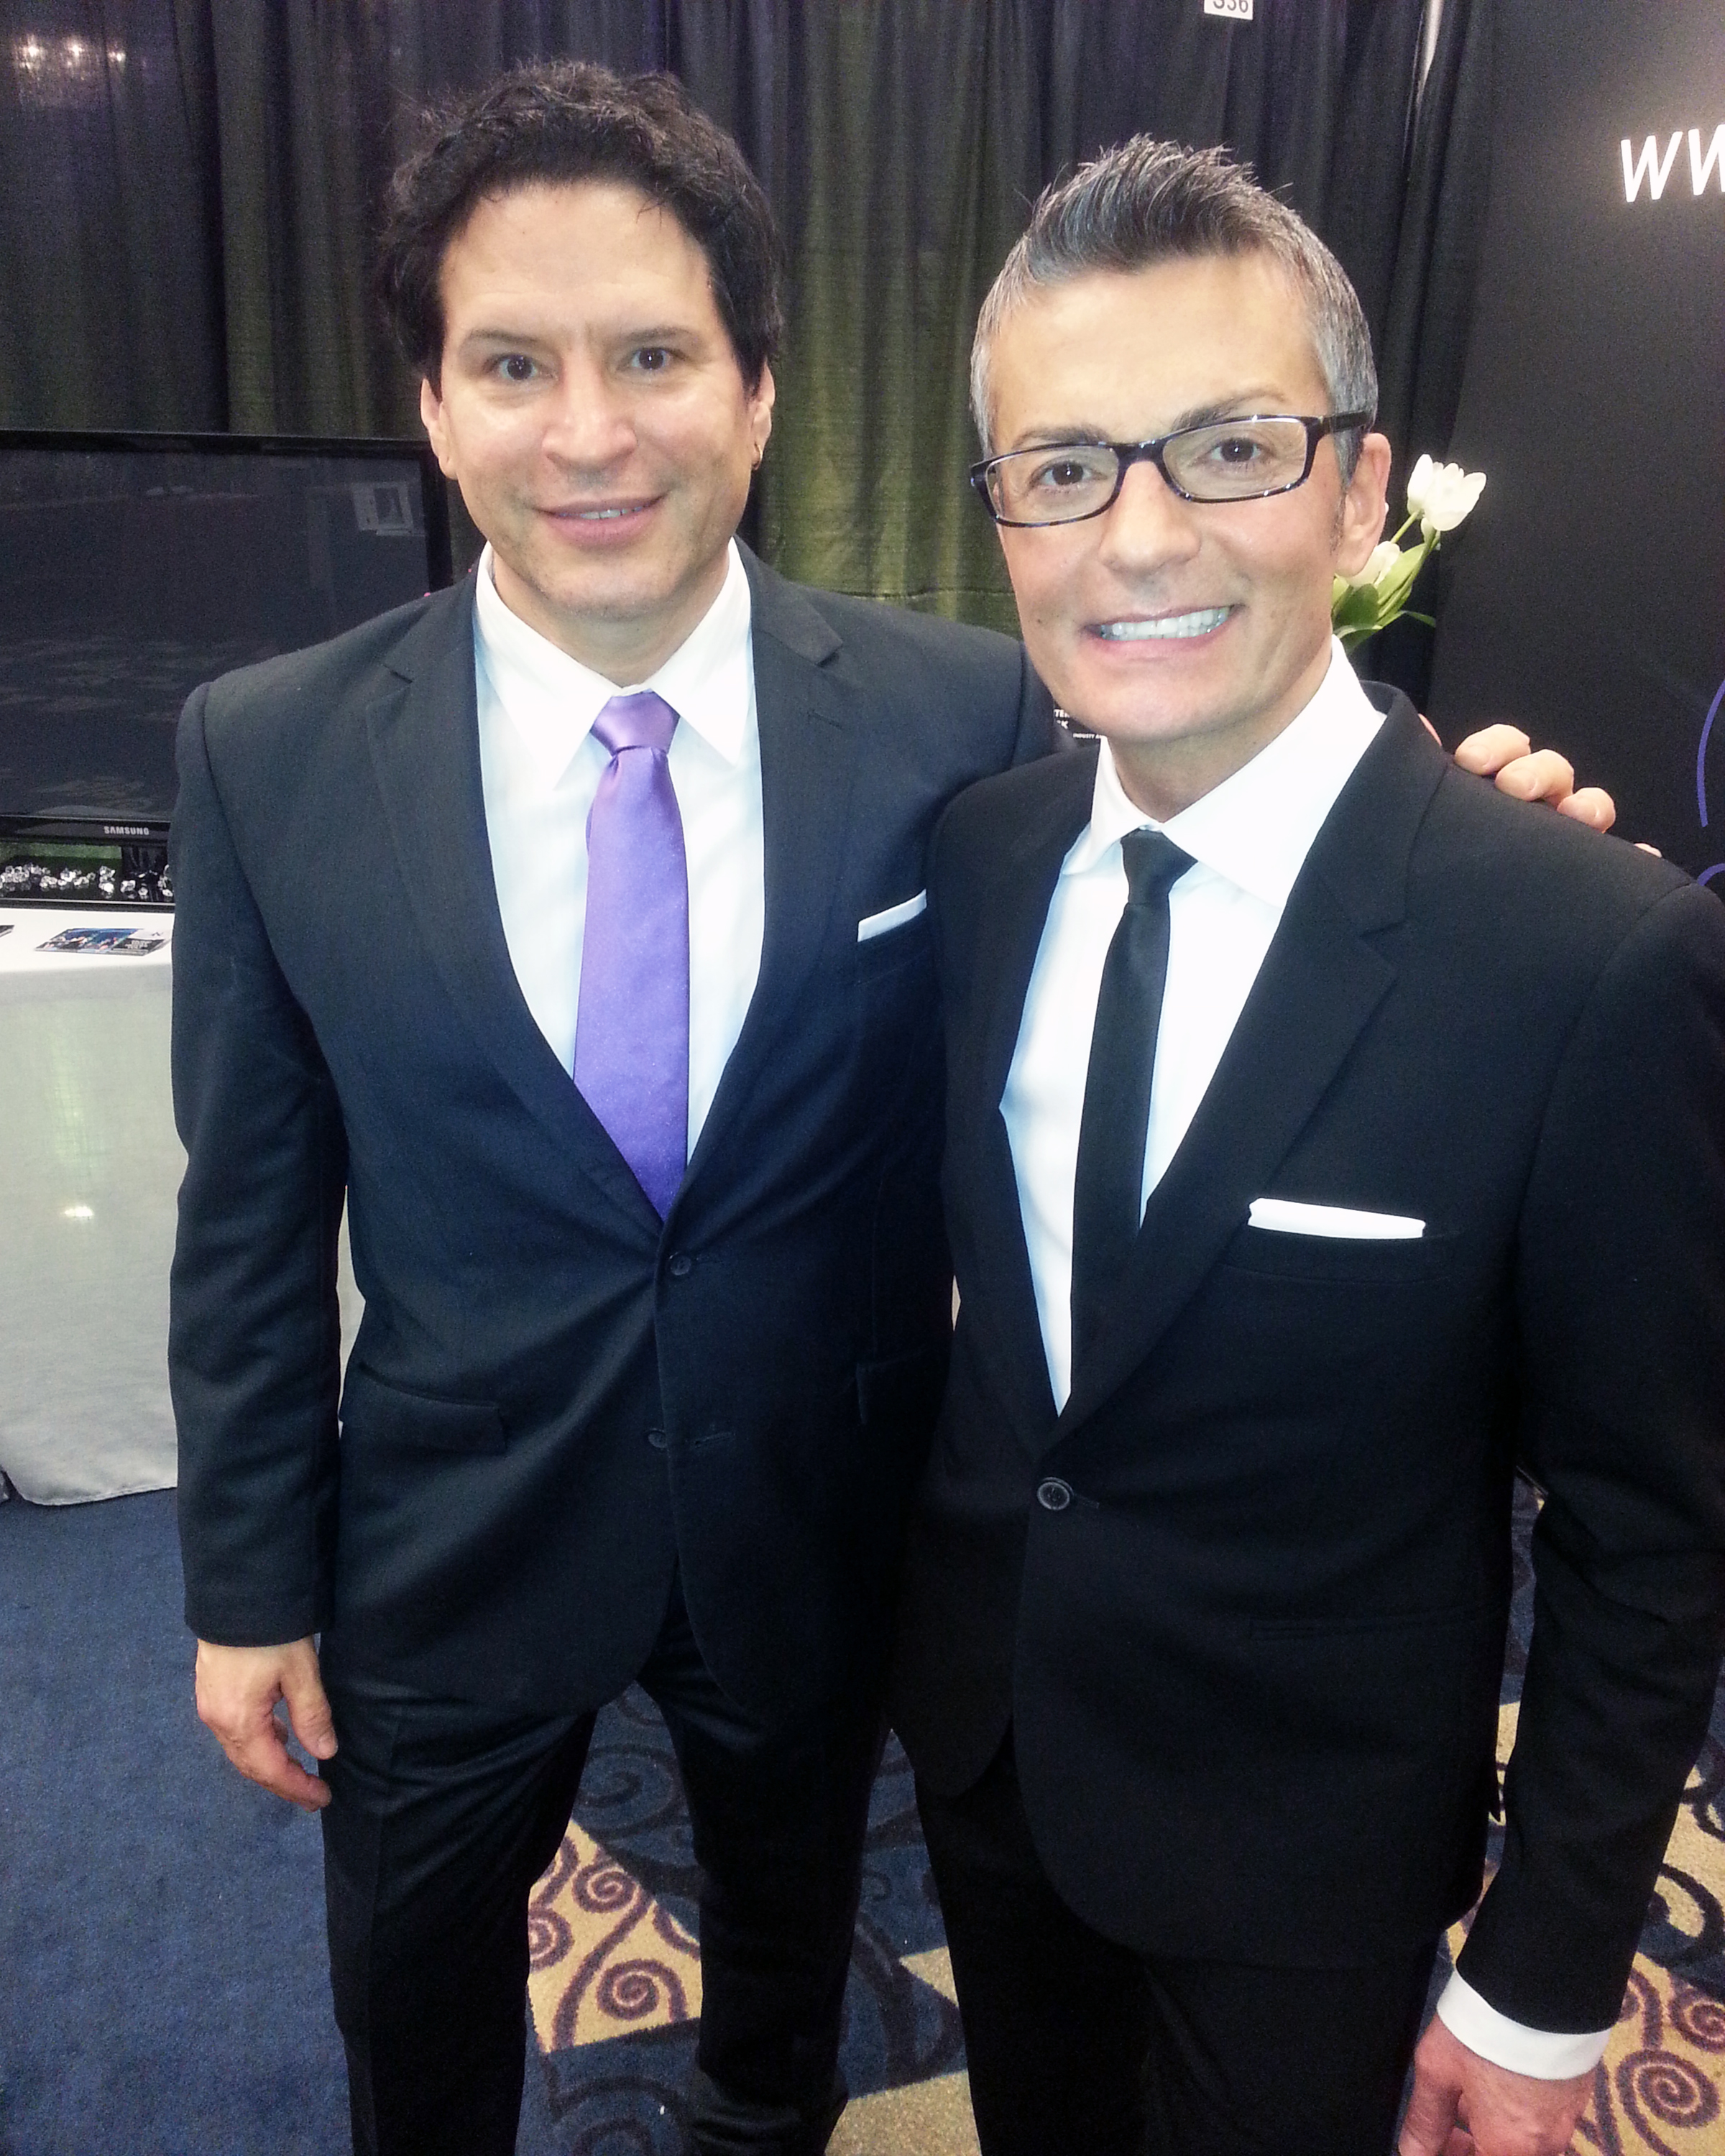 Randy Fenoli from Say Yes to the Dress With Danny Kramer